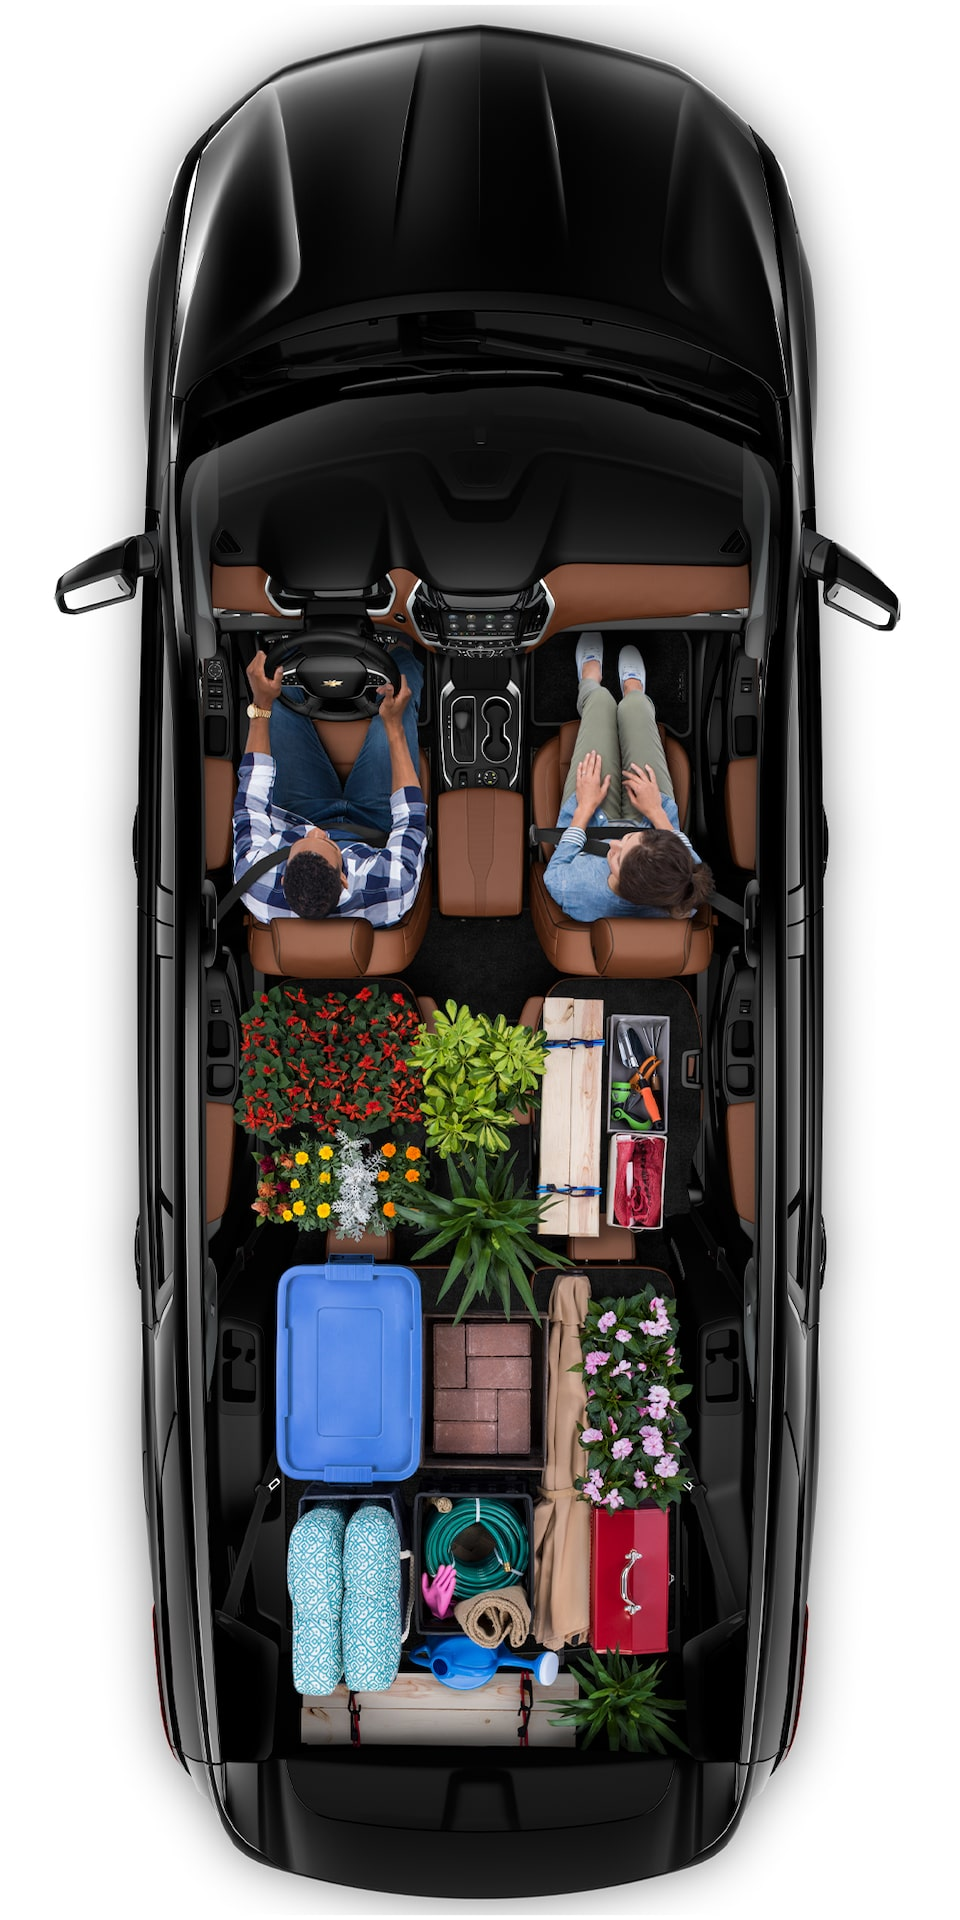 2021 Chevy Traverse Cargo Aerial View